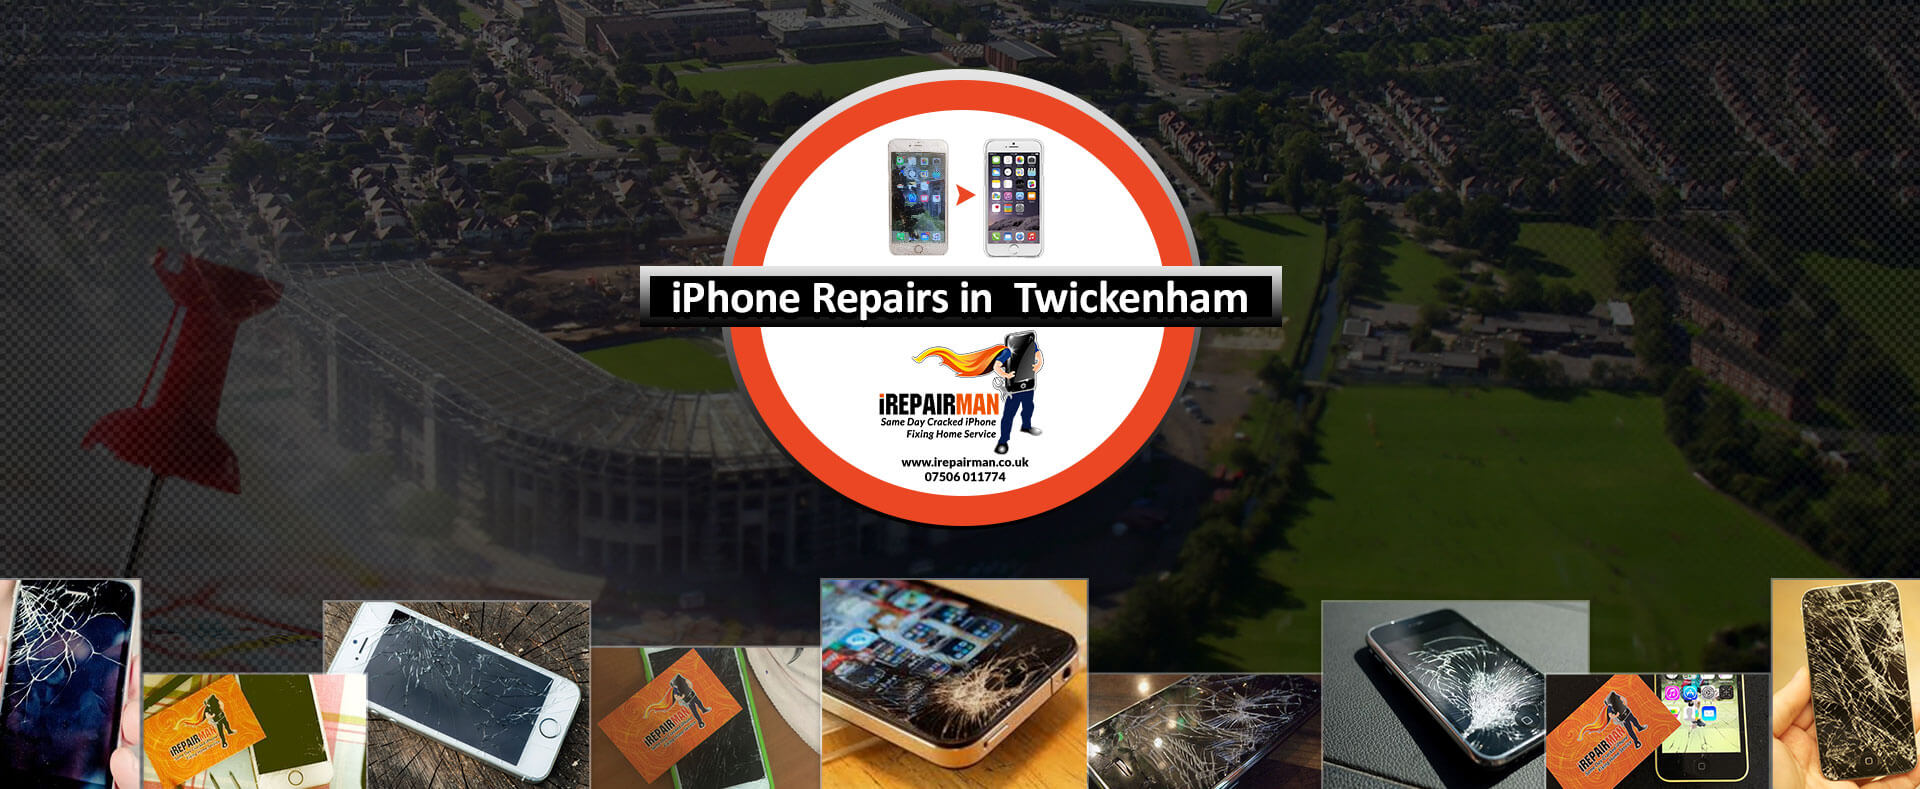 iPhone Repairs in Twickenham